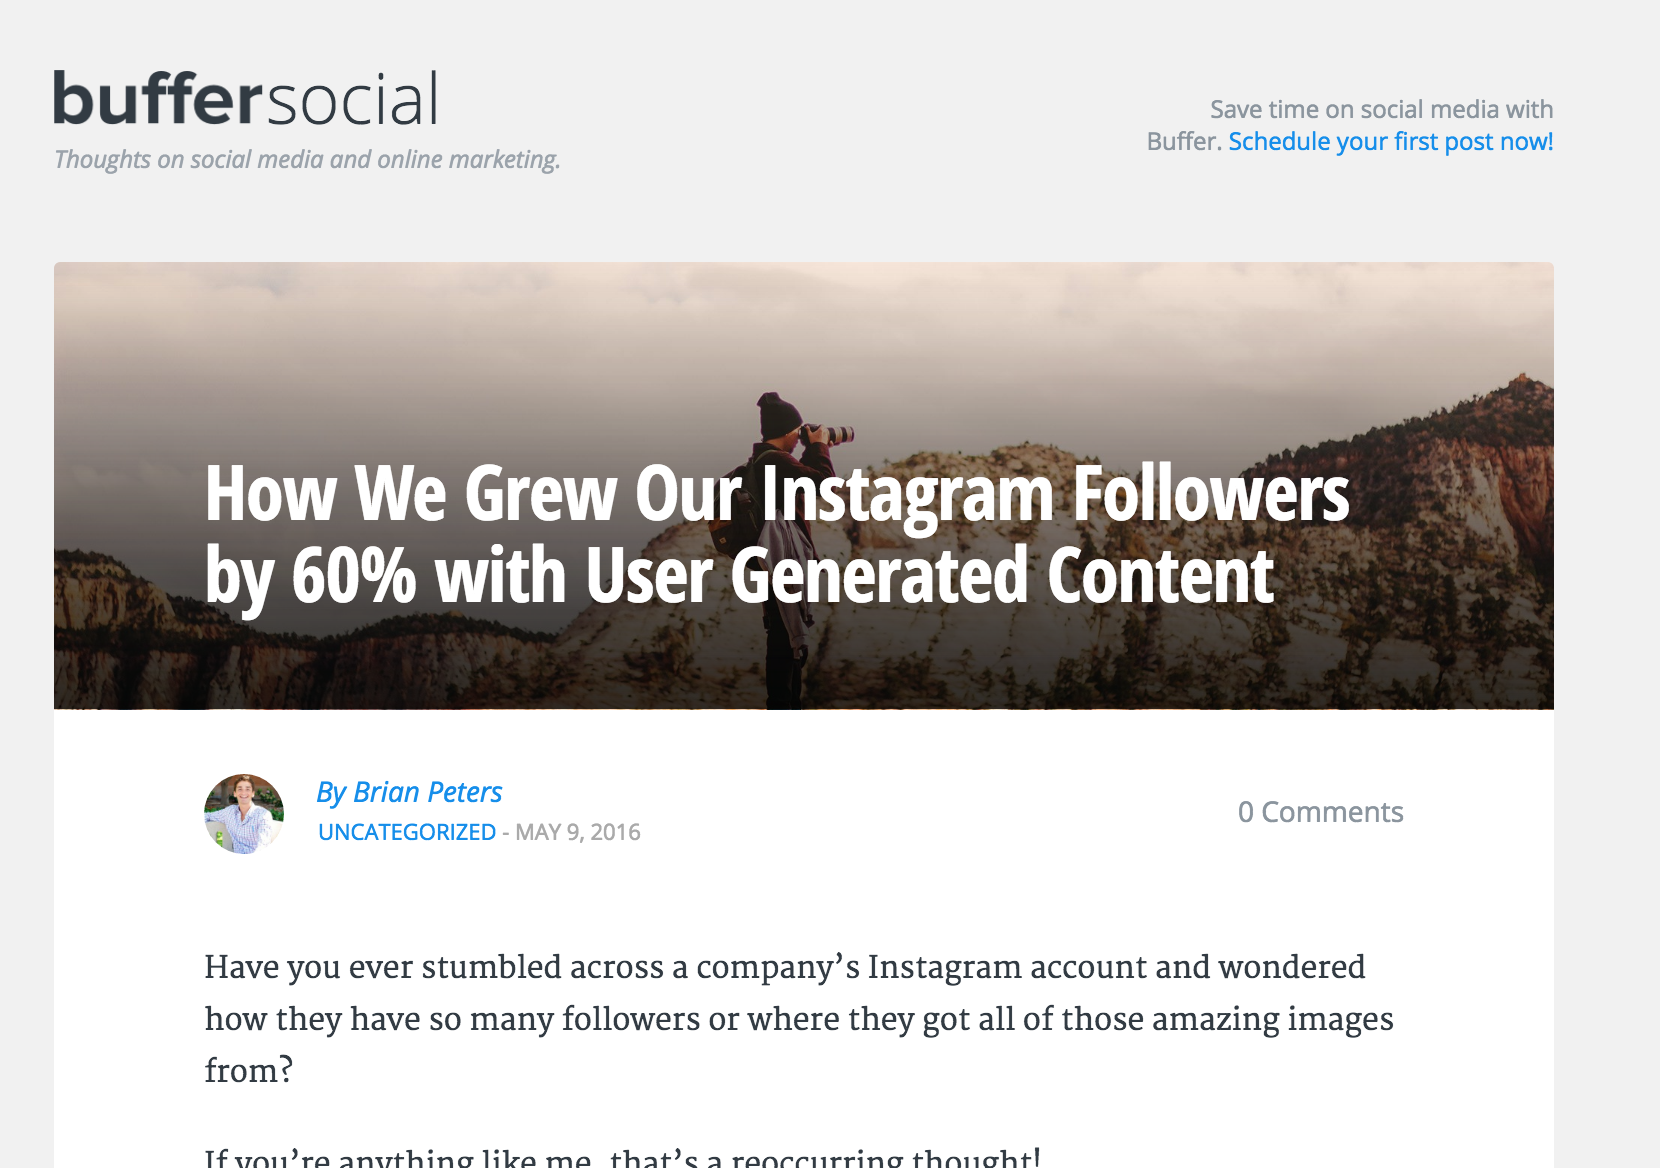 This Company Grew Their Instagram Followers by 60% By Letting Users Create Content for Them